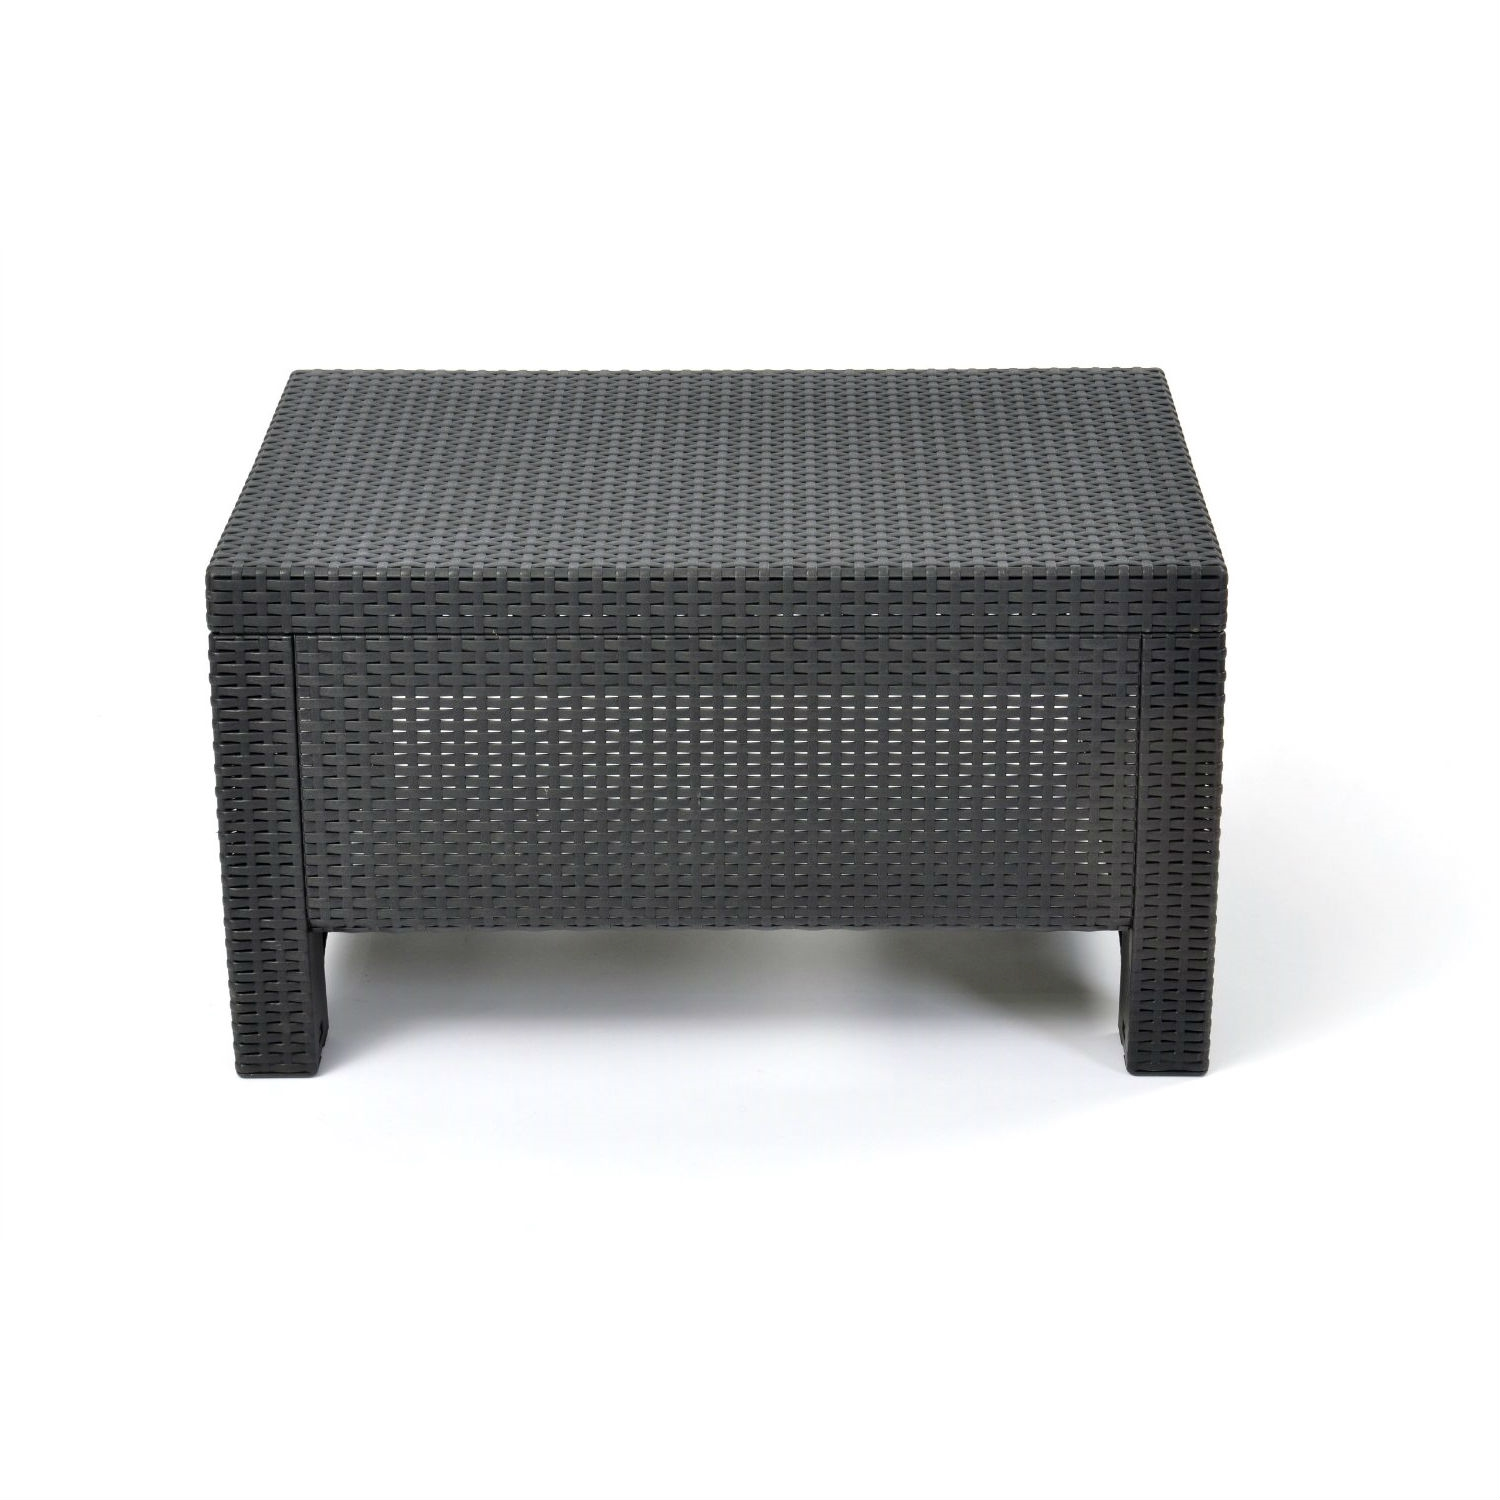 Contemporary Outdoor Coffee Table In Durable Black Plastic